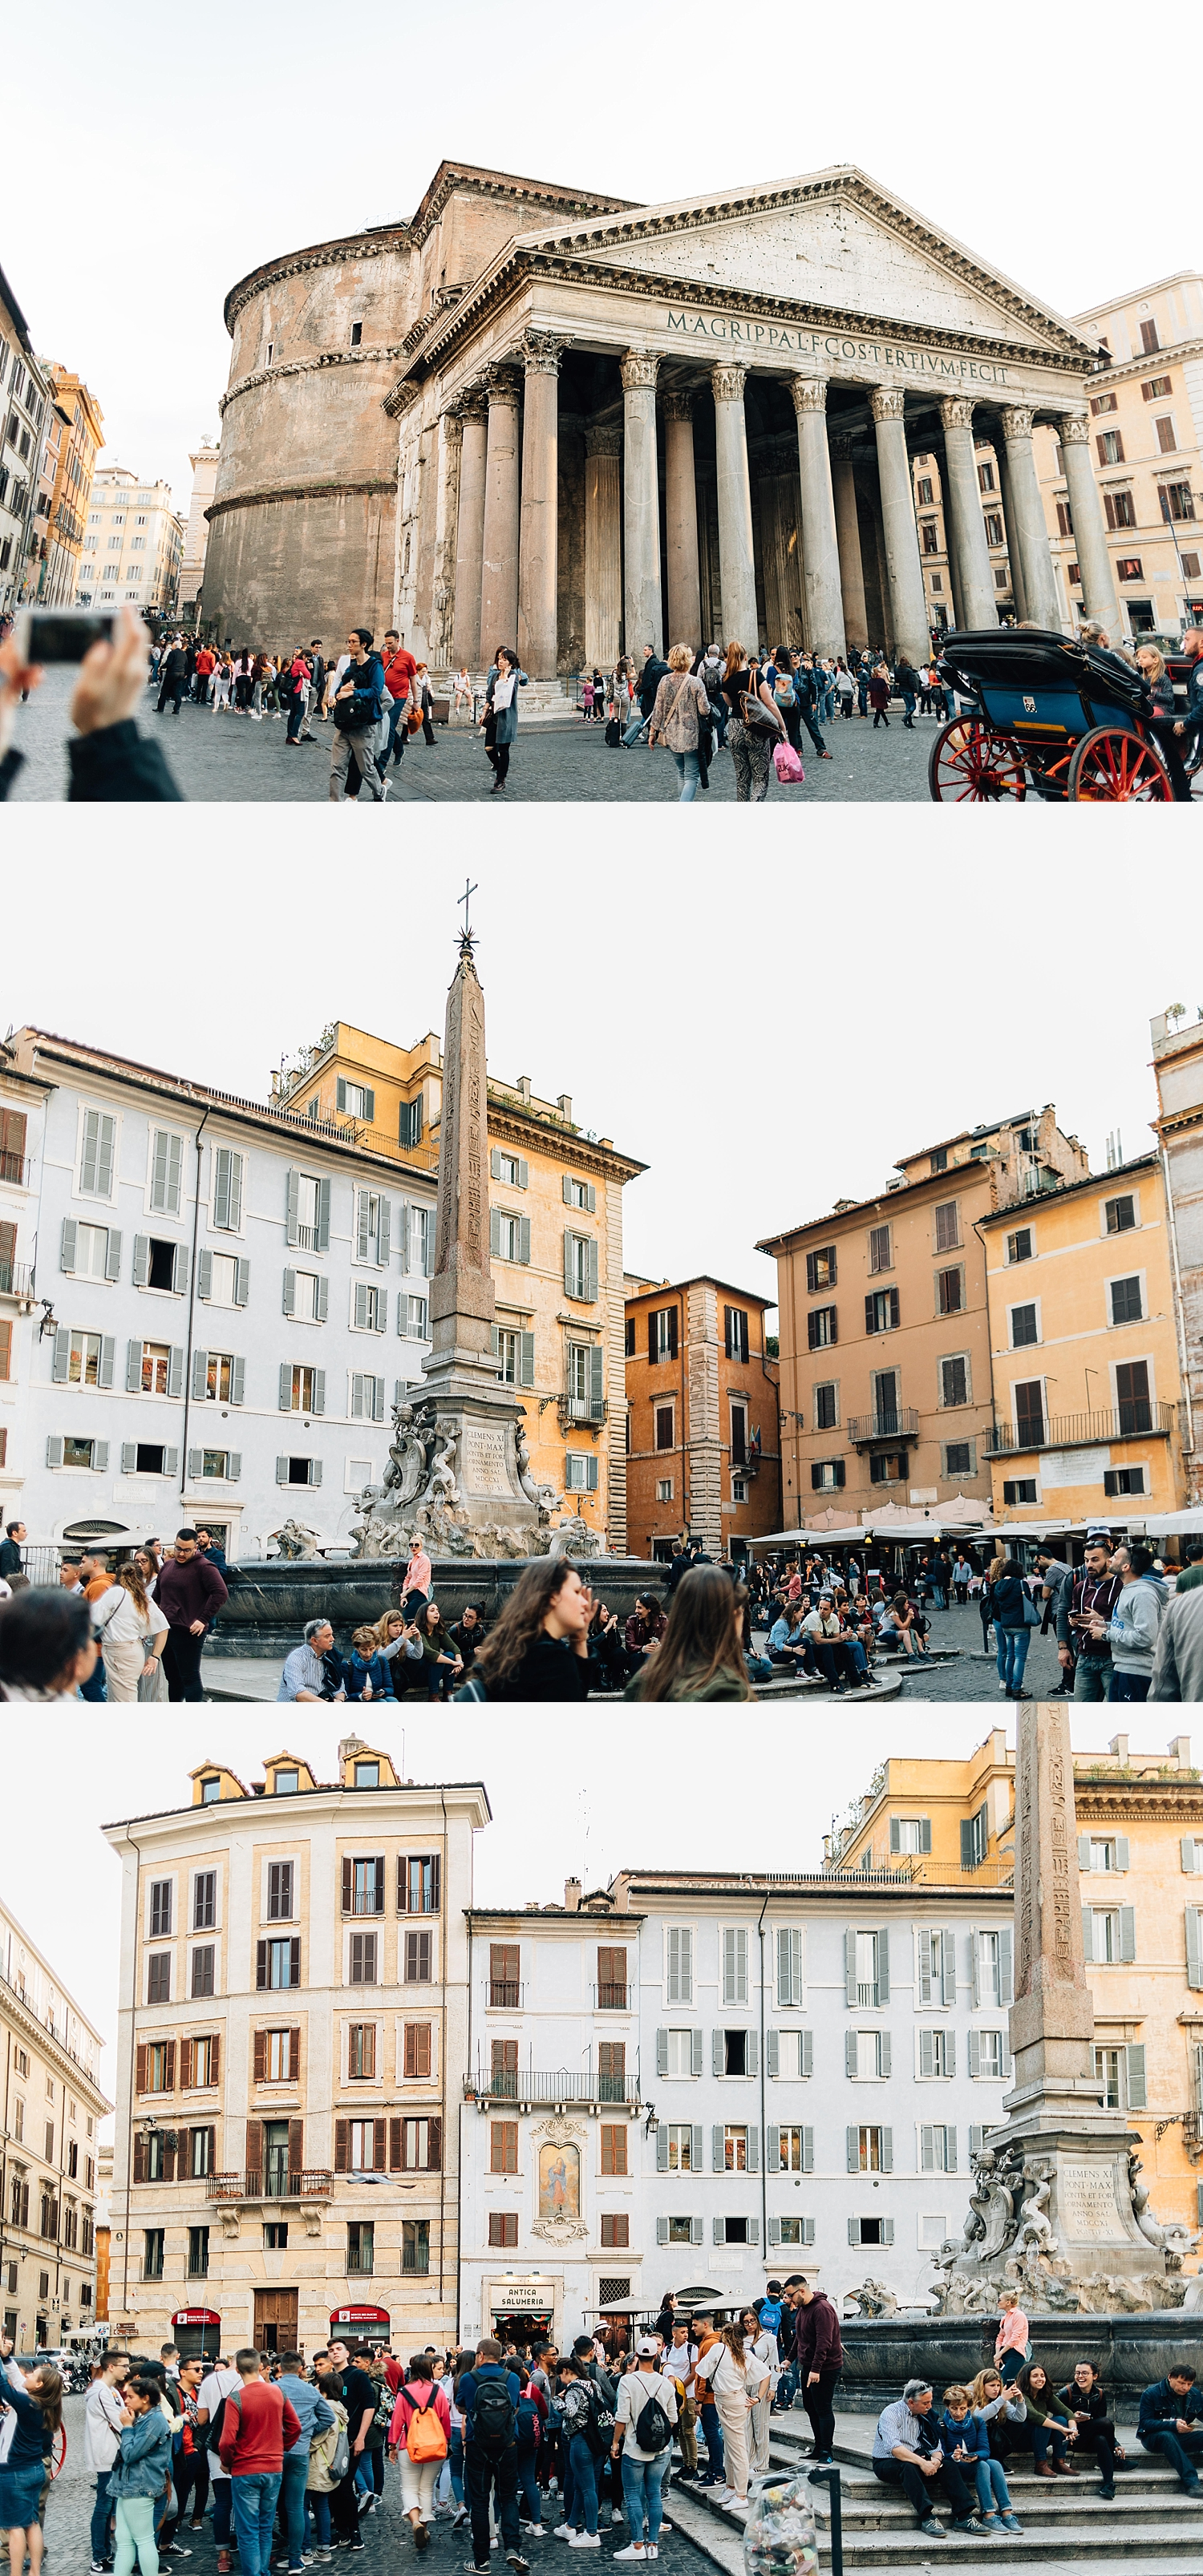 One of my favorite squares -Piazza della Rotonda with the Pantheon.